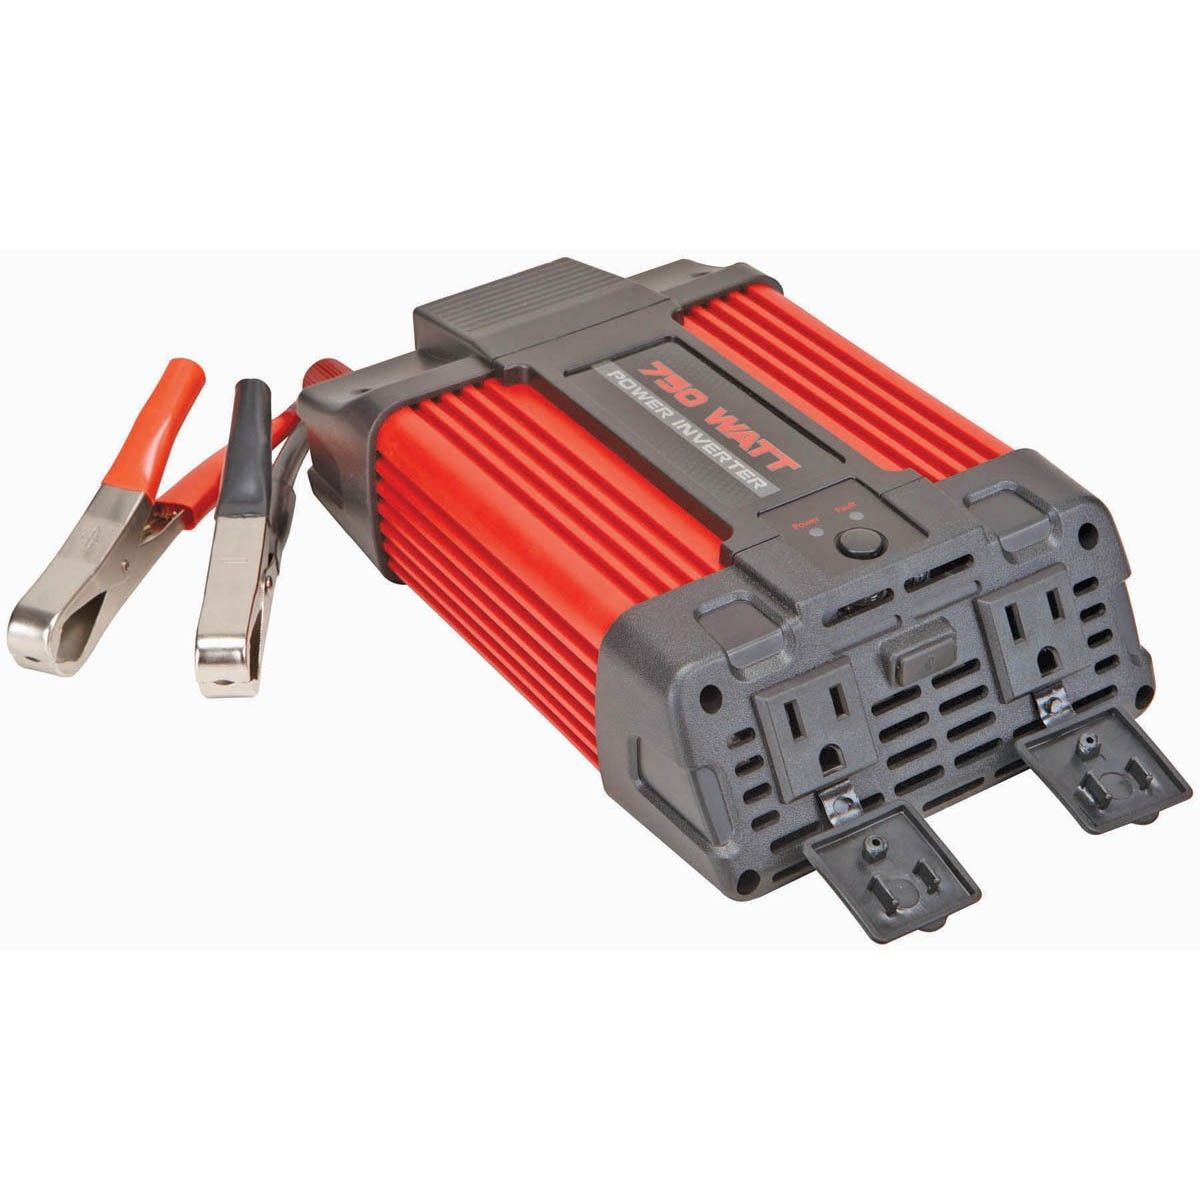 750 watt continuous 1500 watt peak power inverter cen tech 66817 750 watt continuous 1500 watt peak power inverter